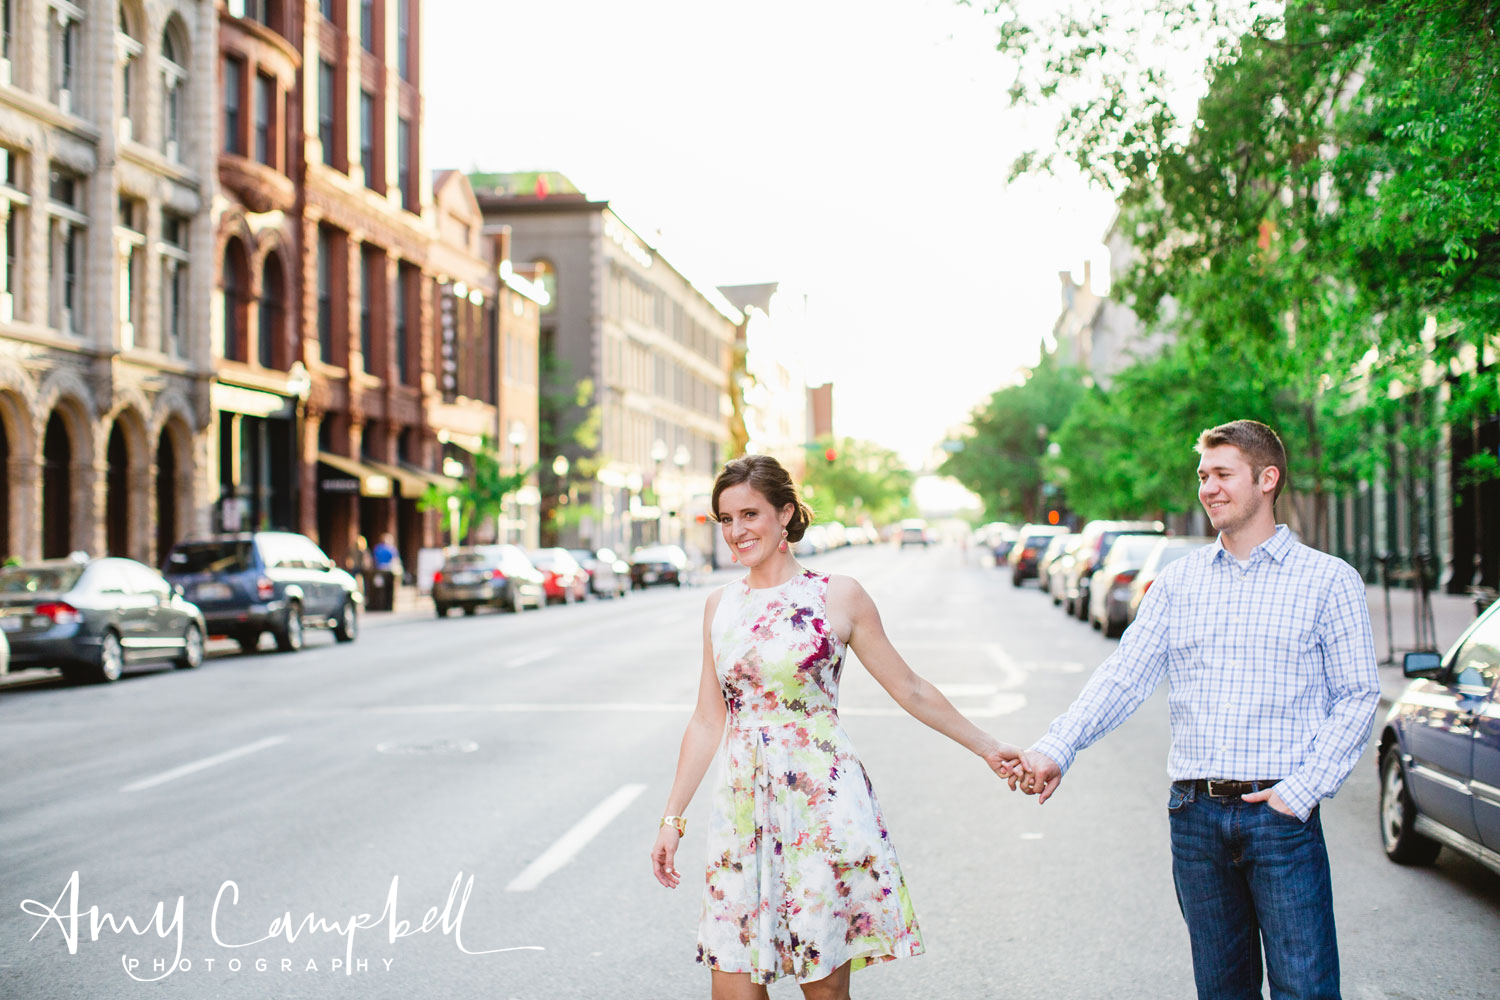 kristenclay_fb_engagement_amycampbellphotography_012.jpg